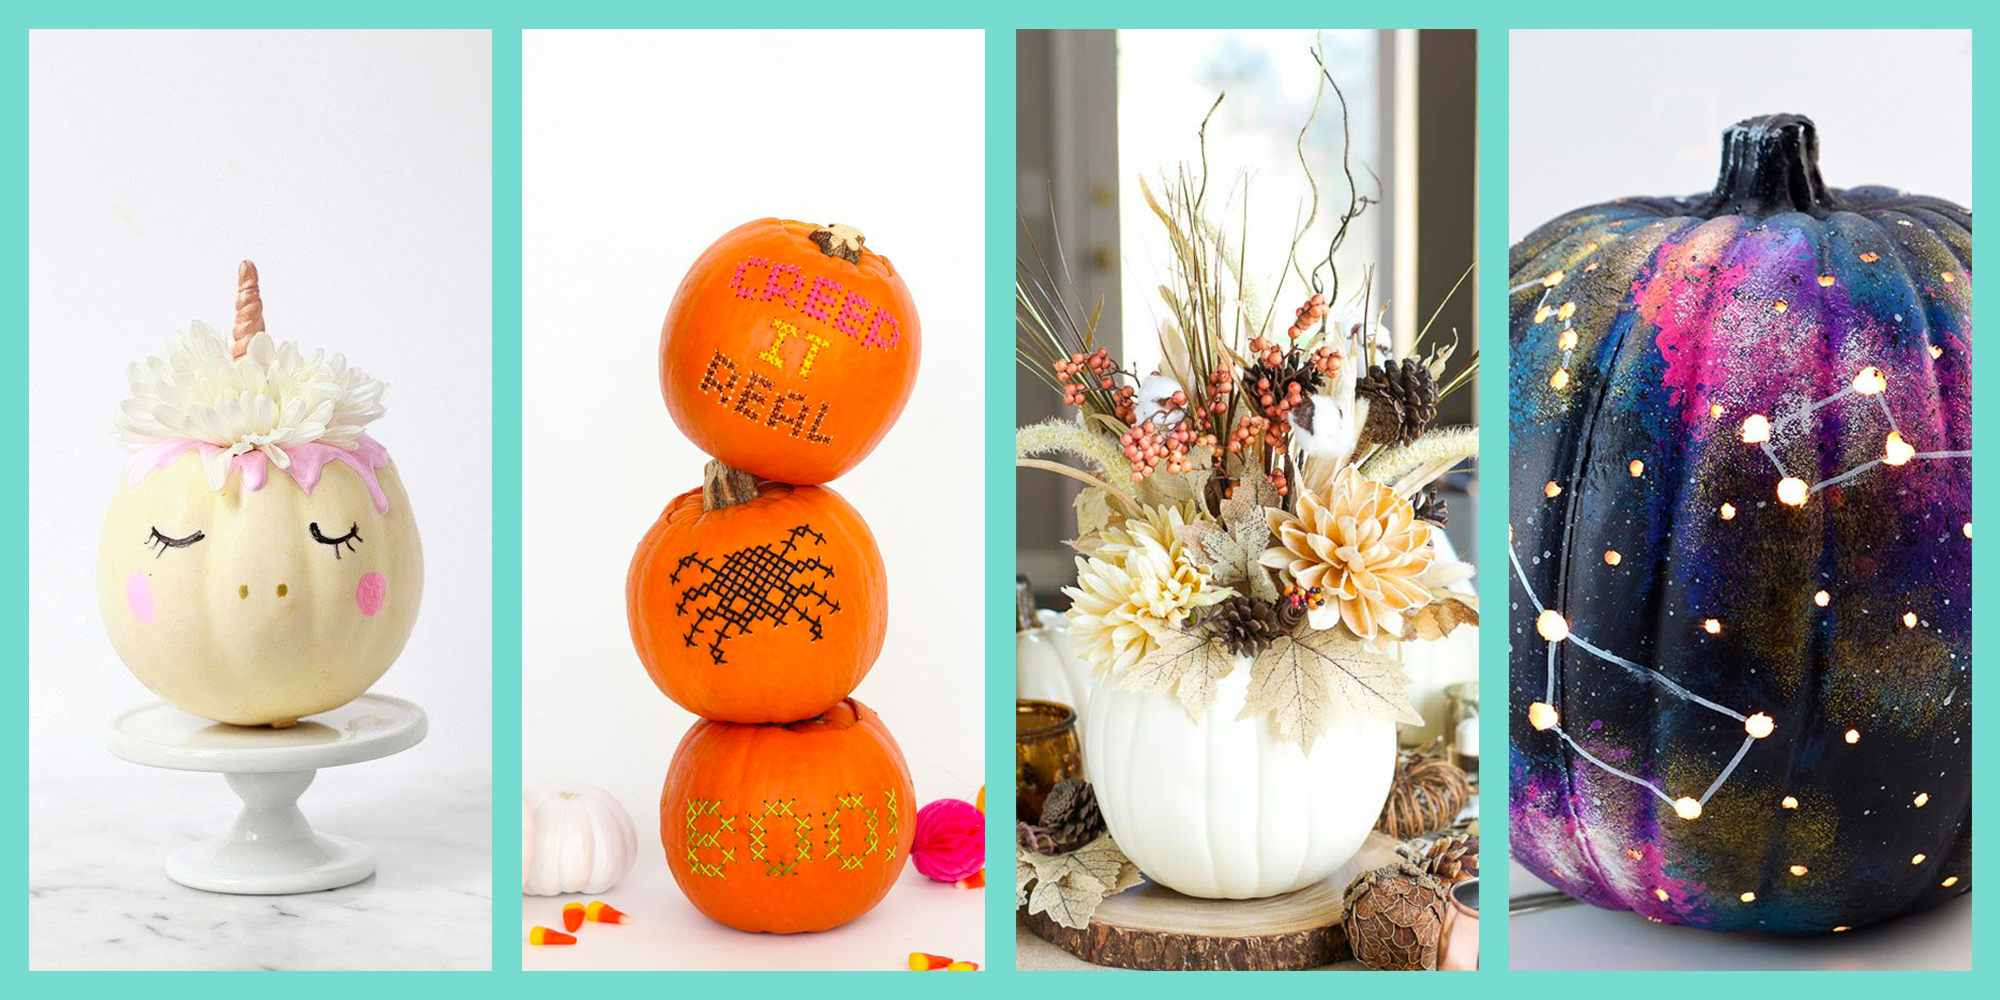 25 Easy Pumpkin Carving Ideas to Try for Halloween 2019